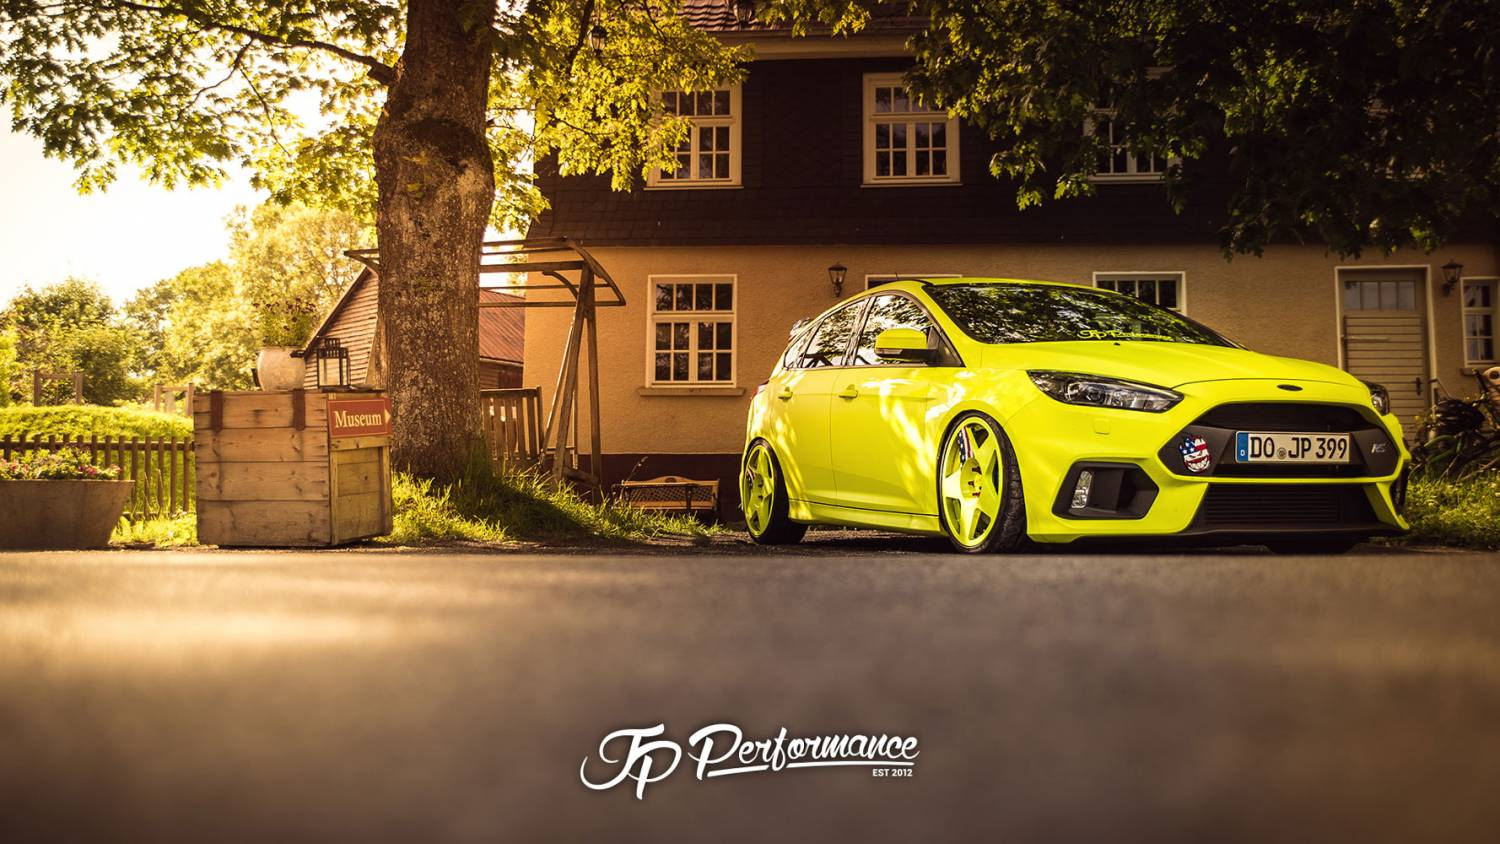 Jp Performance Ford Focus Rs Wallpaper Addicted To